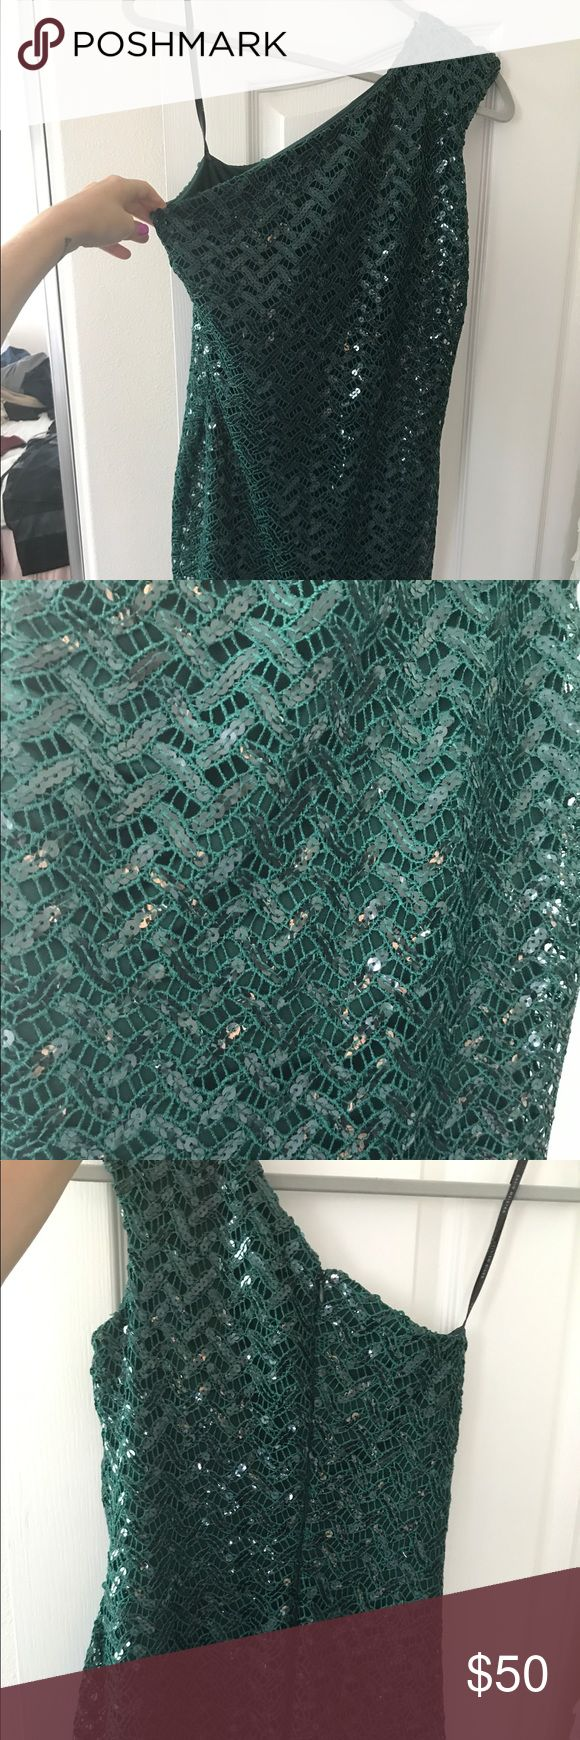 """David Meister one shoulder green sequin dress Size 6. Emerald green sequin one shoulder dress. Worn one time. Form fitting. Has little give. I'm 5'10"""" and it lays a few inches above my knees. David Meister Dresses Midi"""